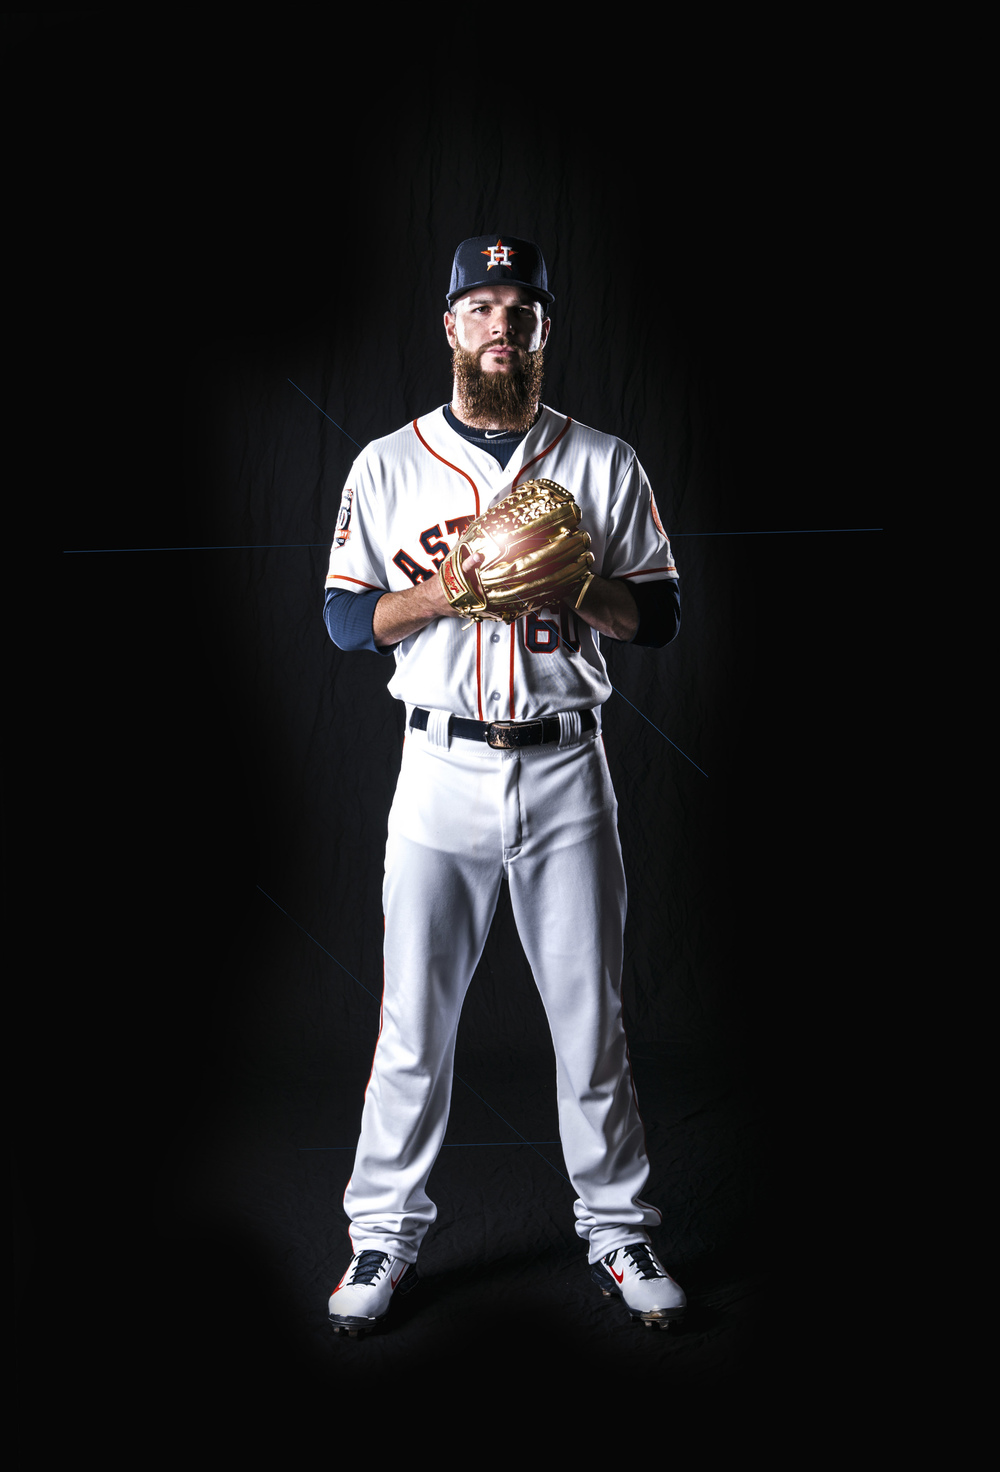 ASTROS-PHOTOS-PS-2015PS-Creative-DallasStanding-PROOF-REV1.jpg